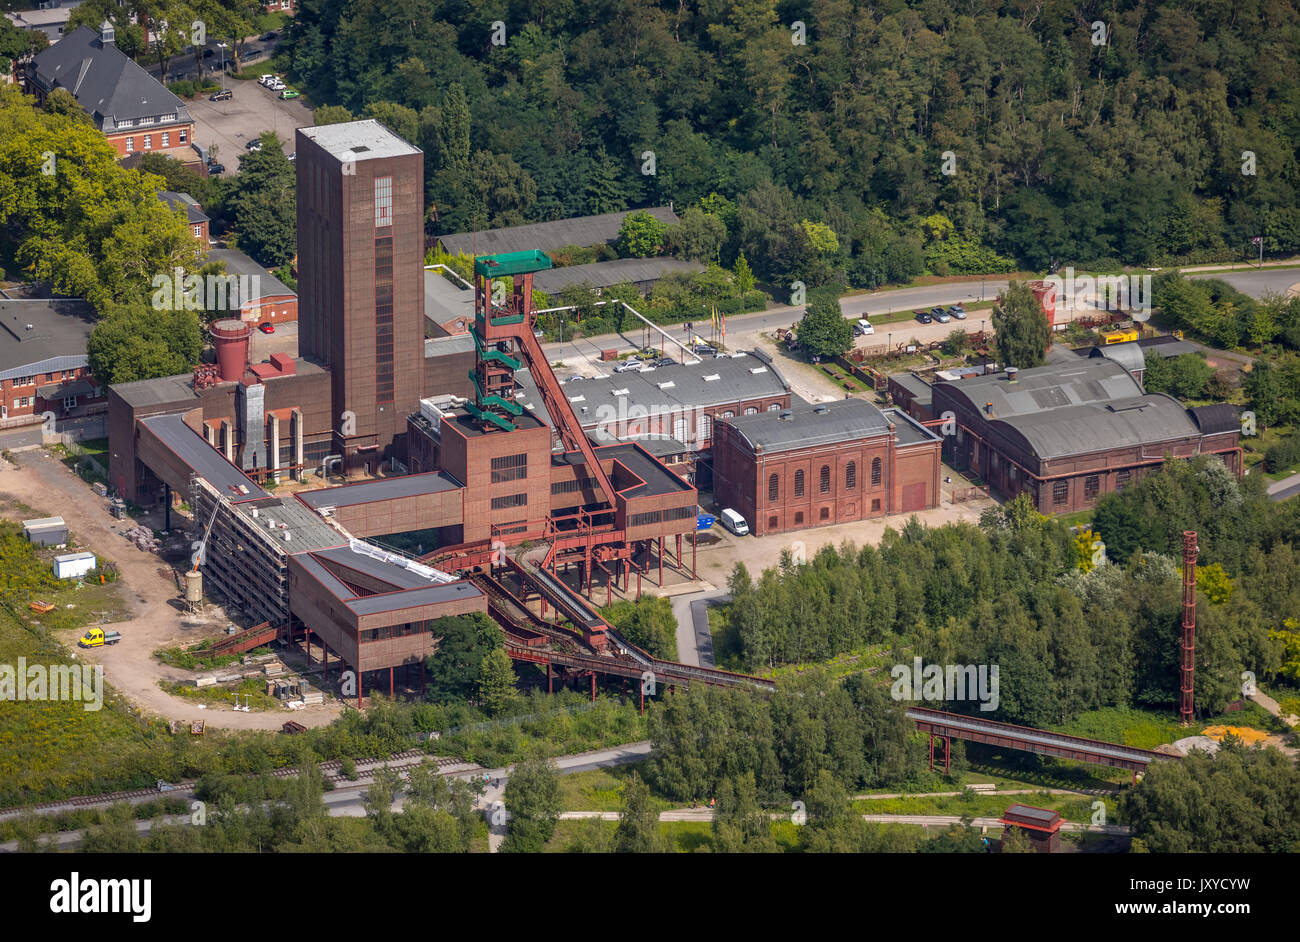 PACT Zollverein, art shaft Zollverein Thomas Rother, area World Heritage Zollverein Essen, Essen, area Ruhr, North Rhine-Westphalia, Germany, Essen, E - Stock Image